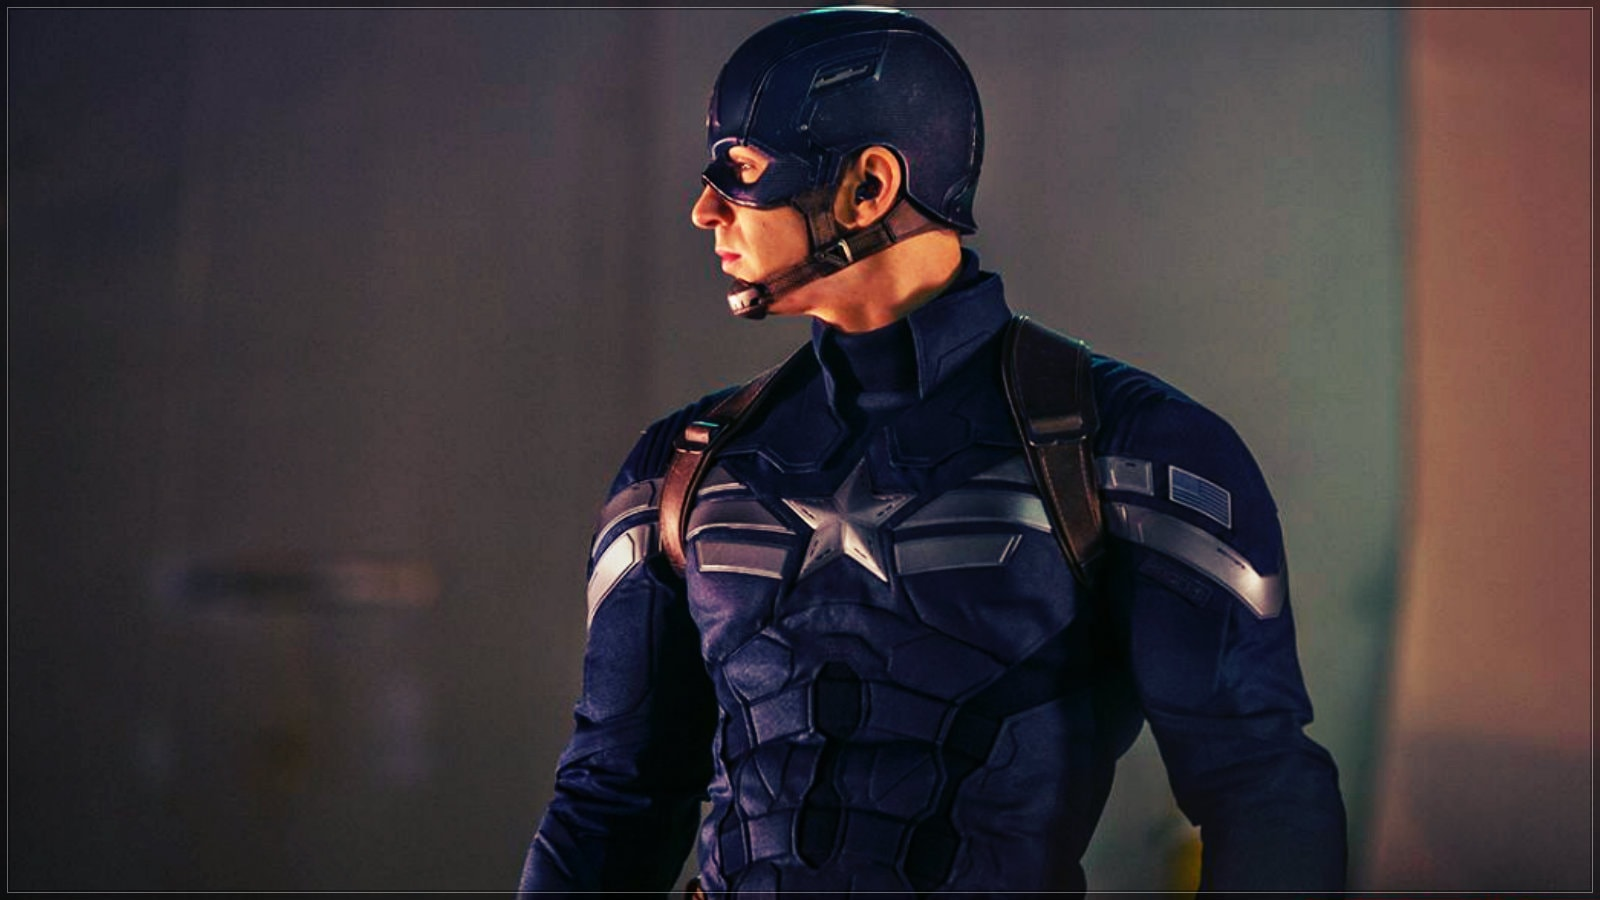 Captain America: The Winter Soldier for mobile